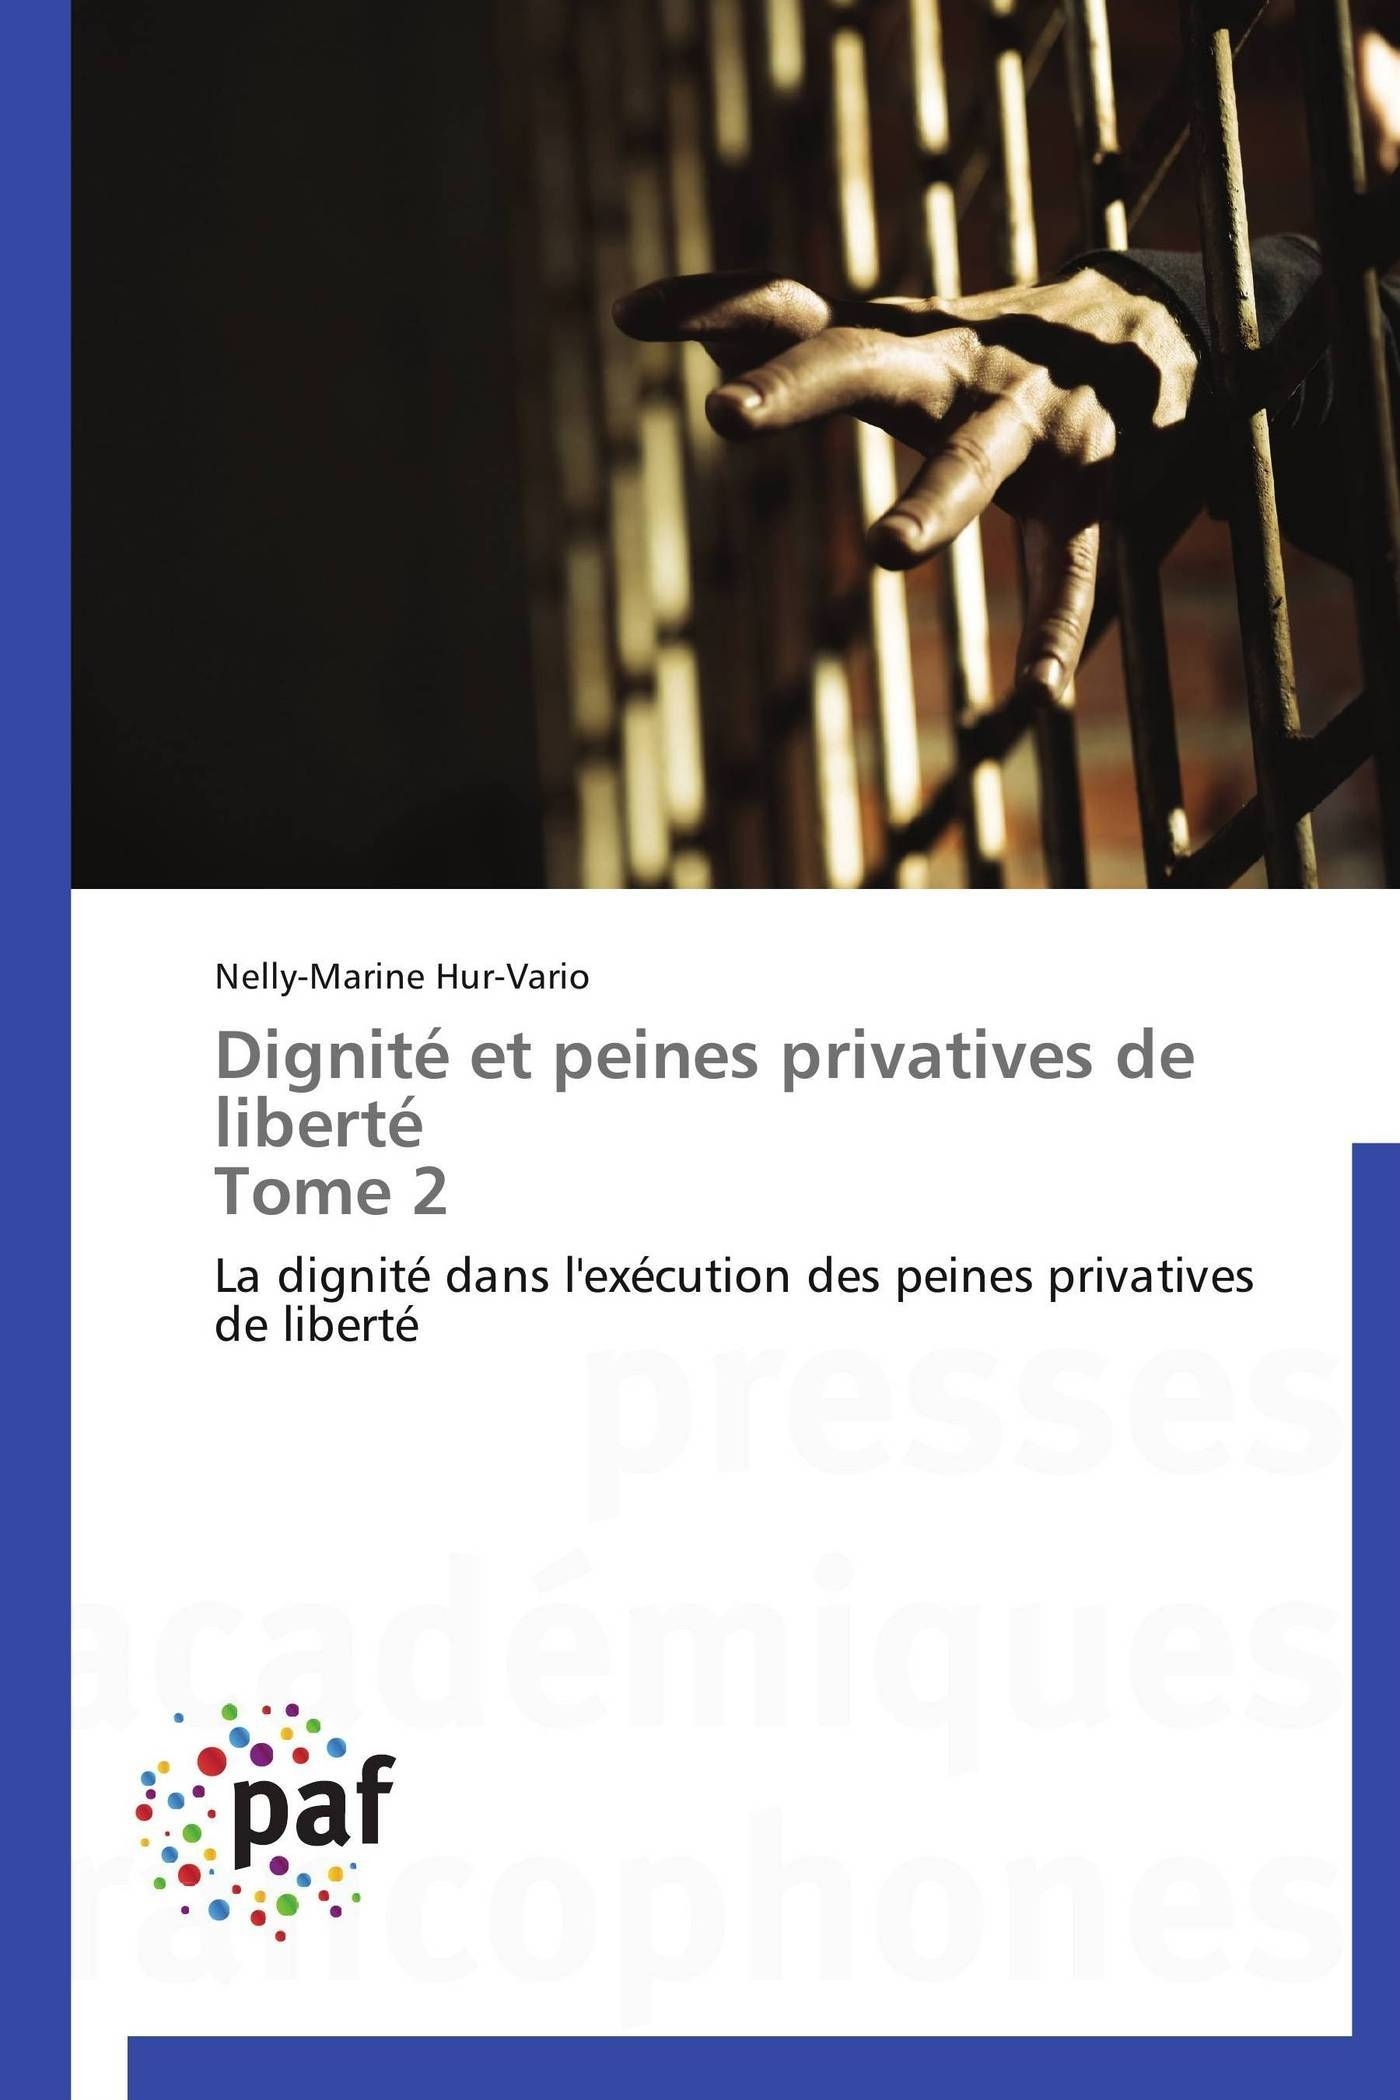 DIGNITE ET PEINES PRIVATIVES DE LIBERTE  TOME 2